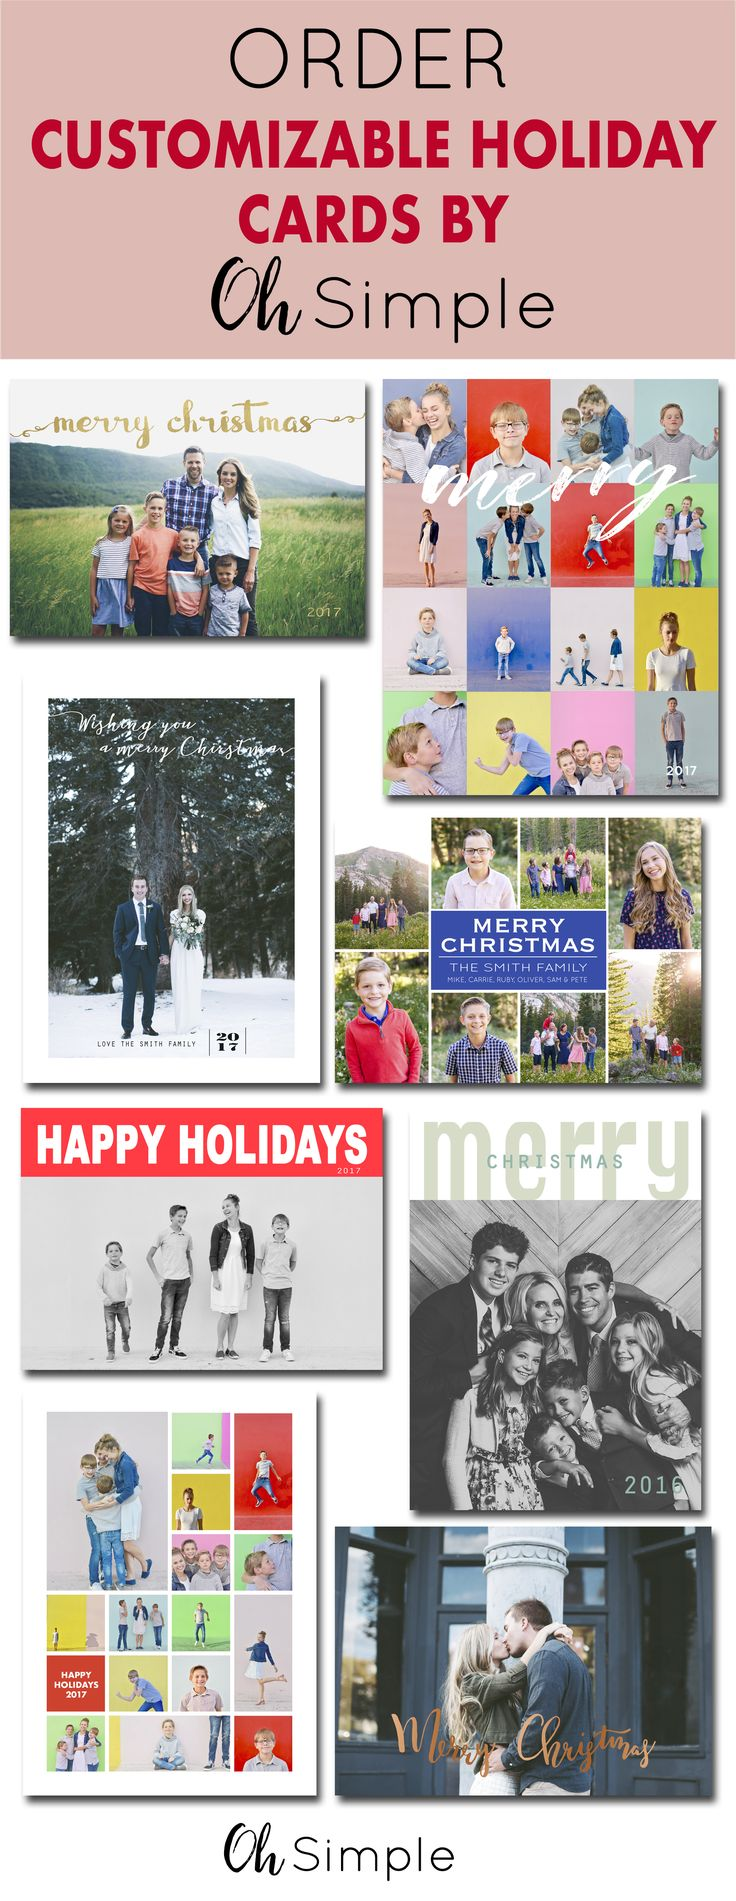 Customize your holiday card this year through Oh Simple.  Choose your color, choose your own greeting, add a note to friends and family, write a summary of your year.  Christmas cards | holiday cards